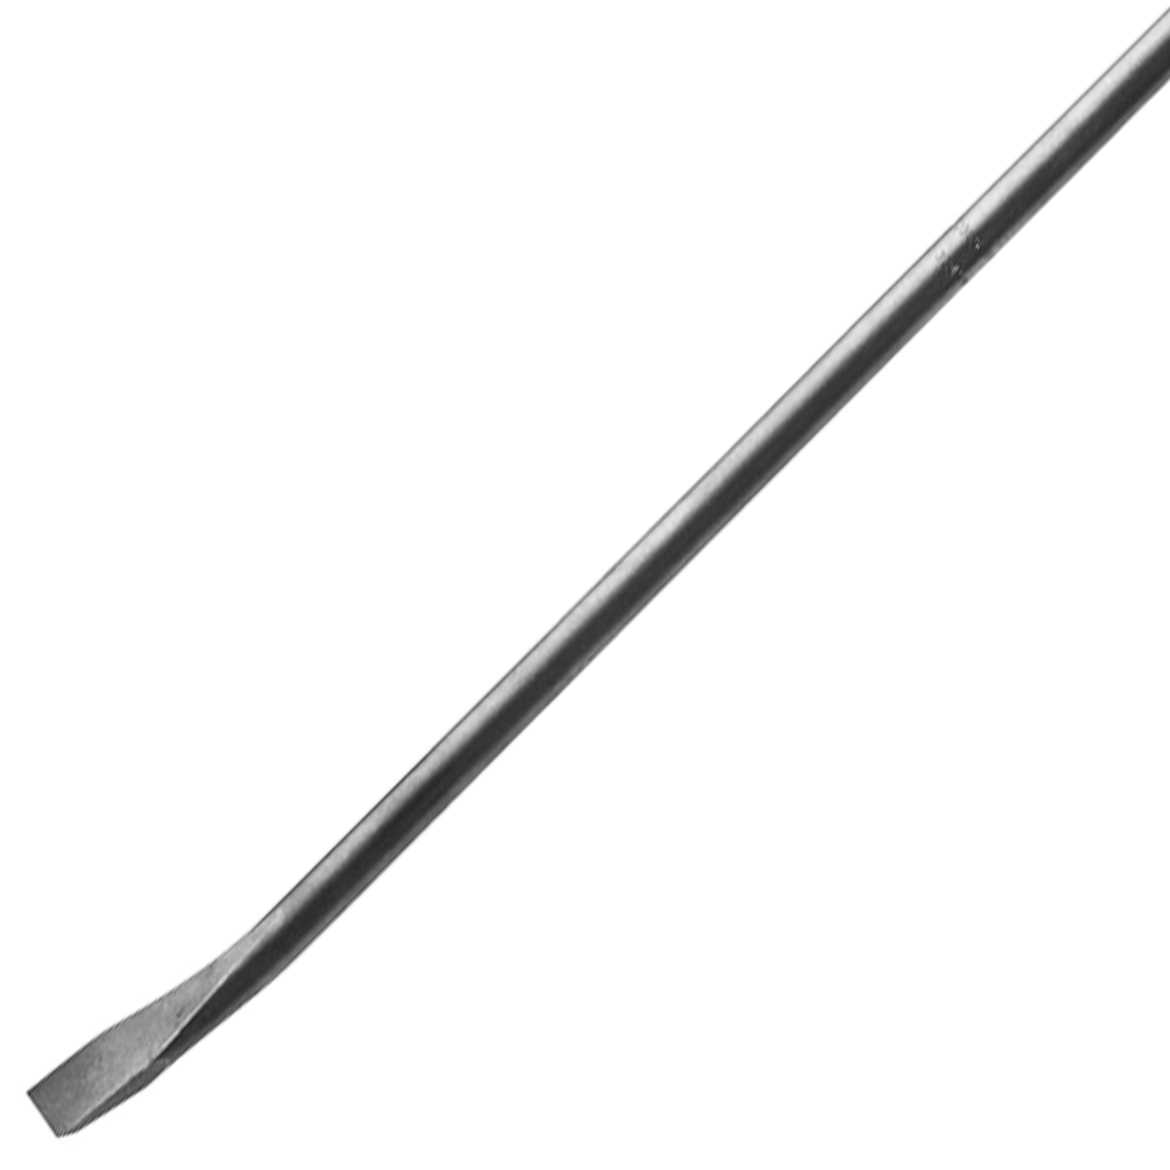 Klein Tools Connecting Bar, 30', 3/4' Stock, Offset Chisel and Straight Tapered Point, Round